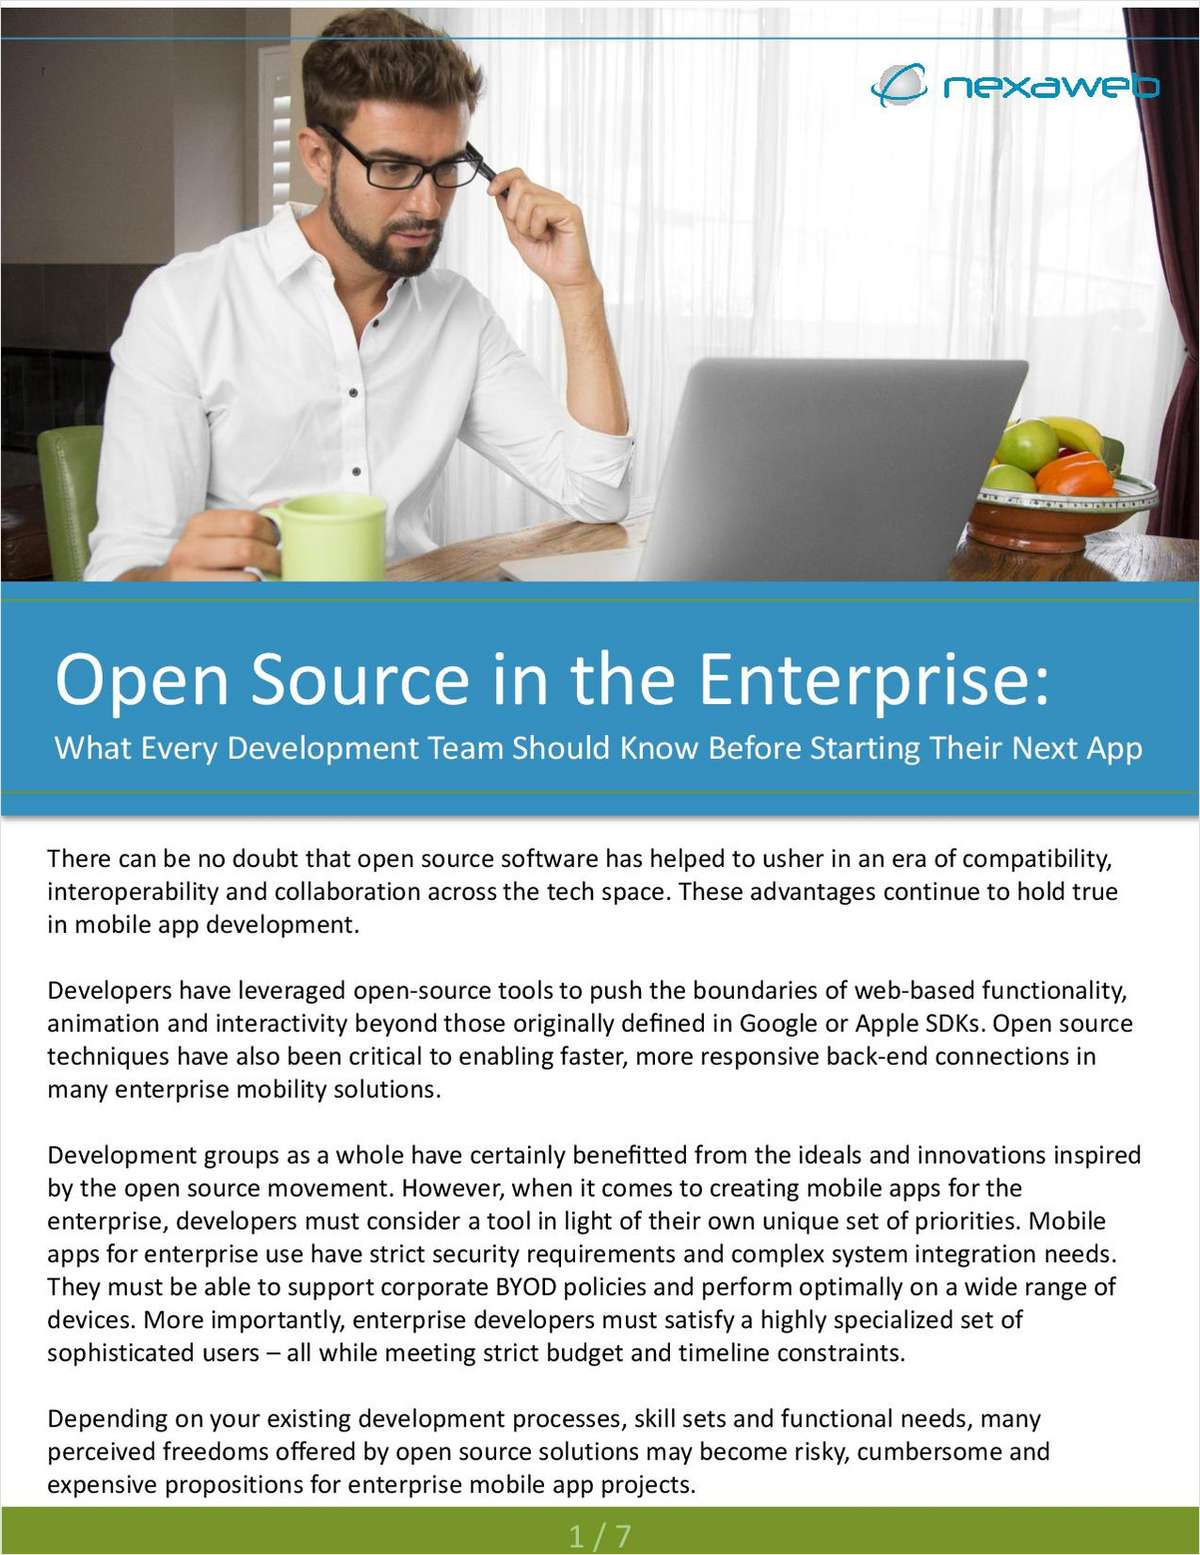 The Benefits of Open Source Software for Developers